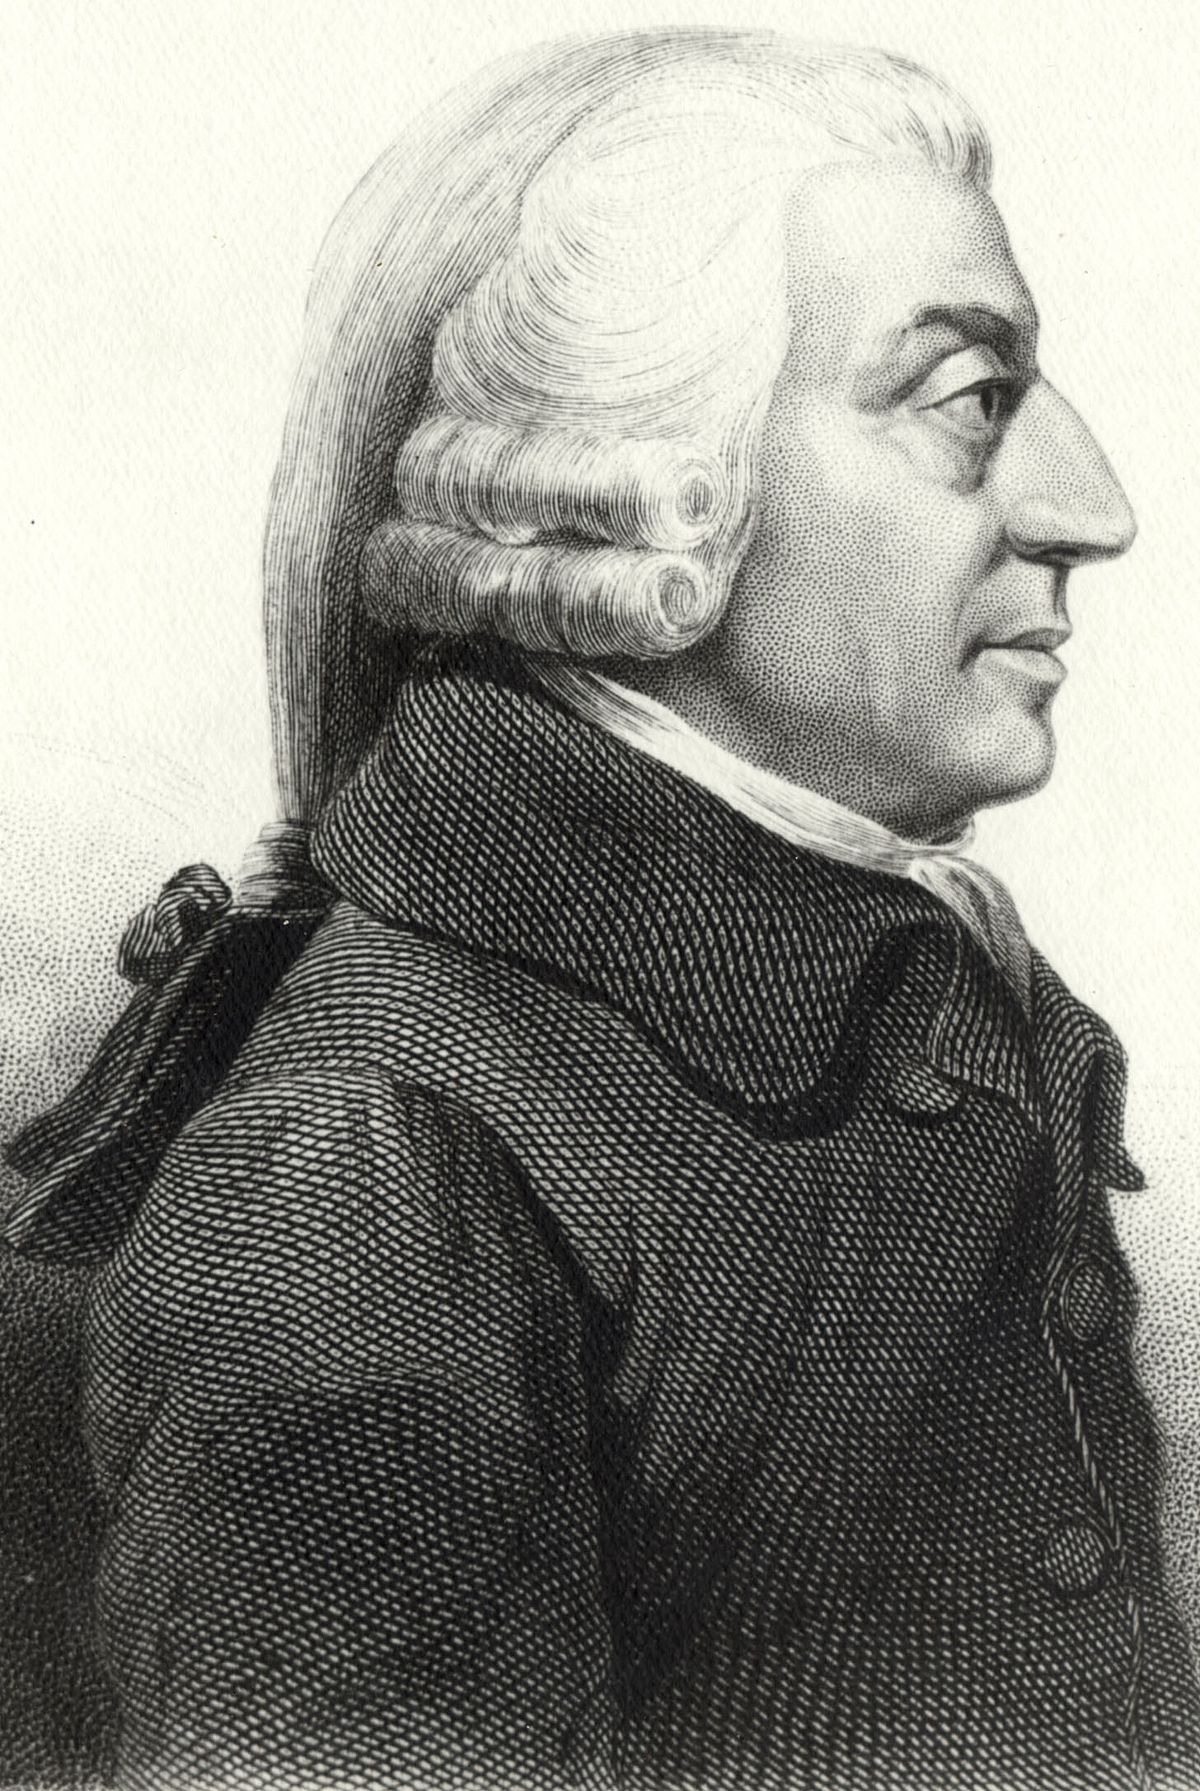 Adam Smith Libros Adam Smith Wikipedia La Enciclopedia Libre